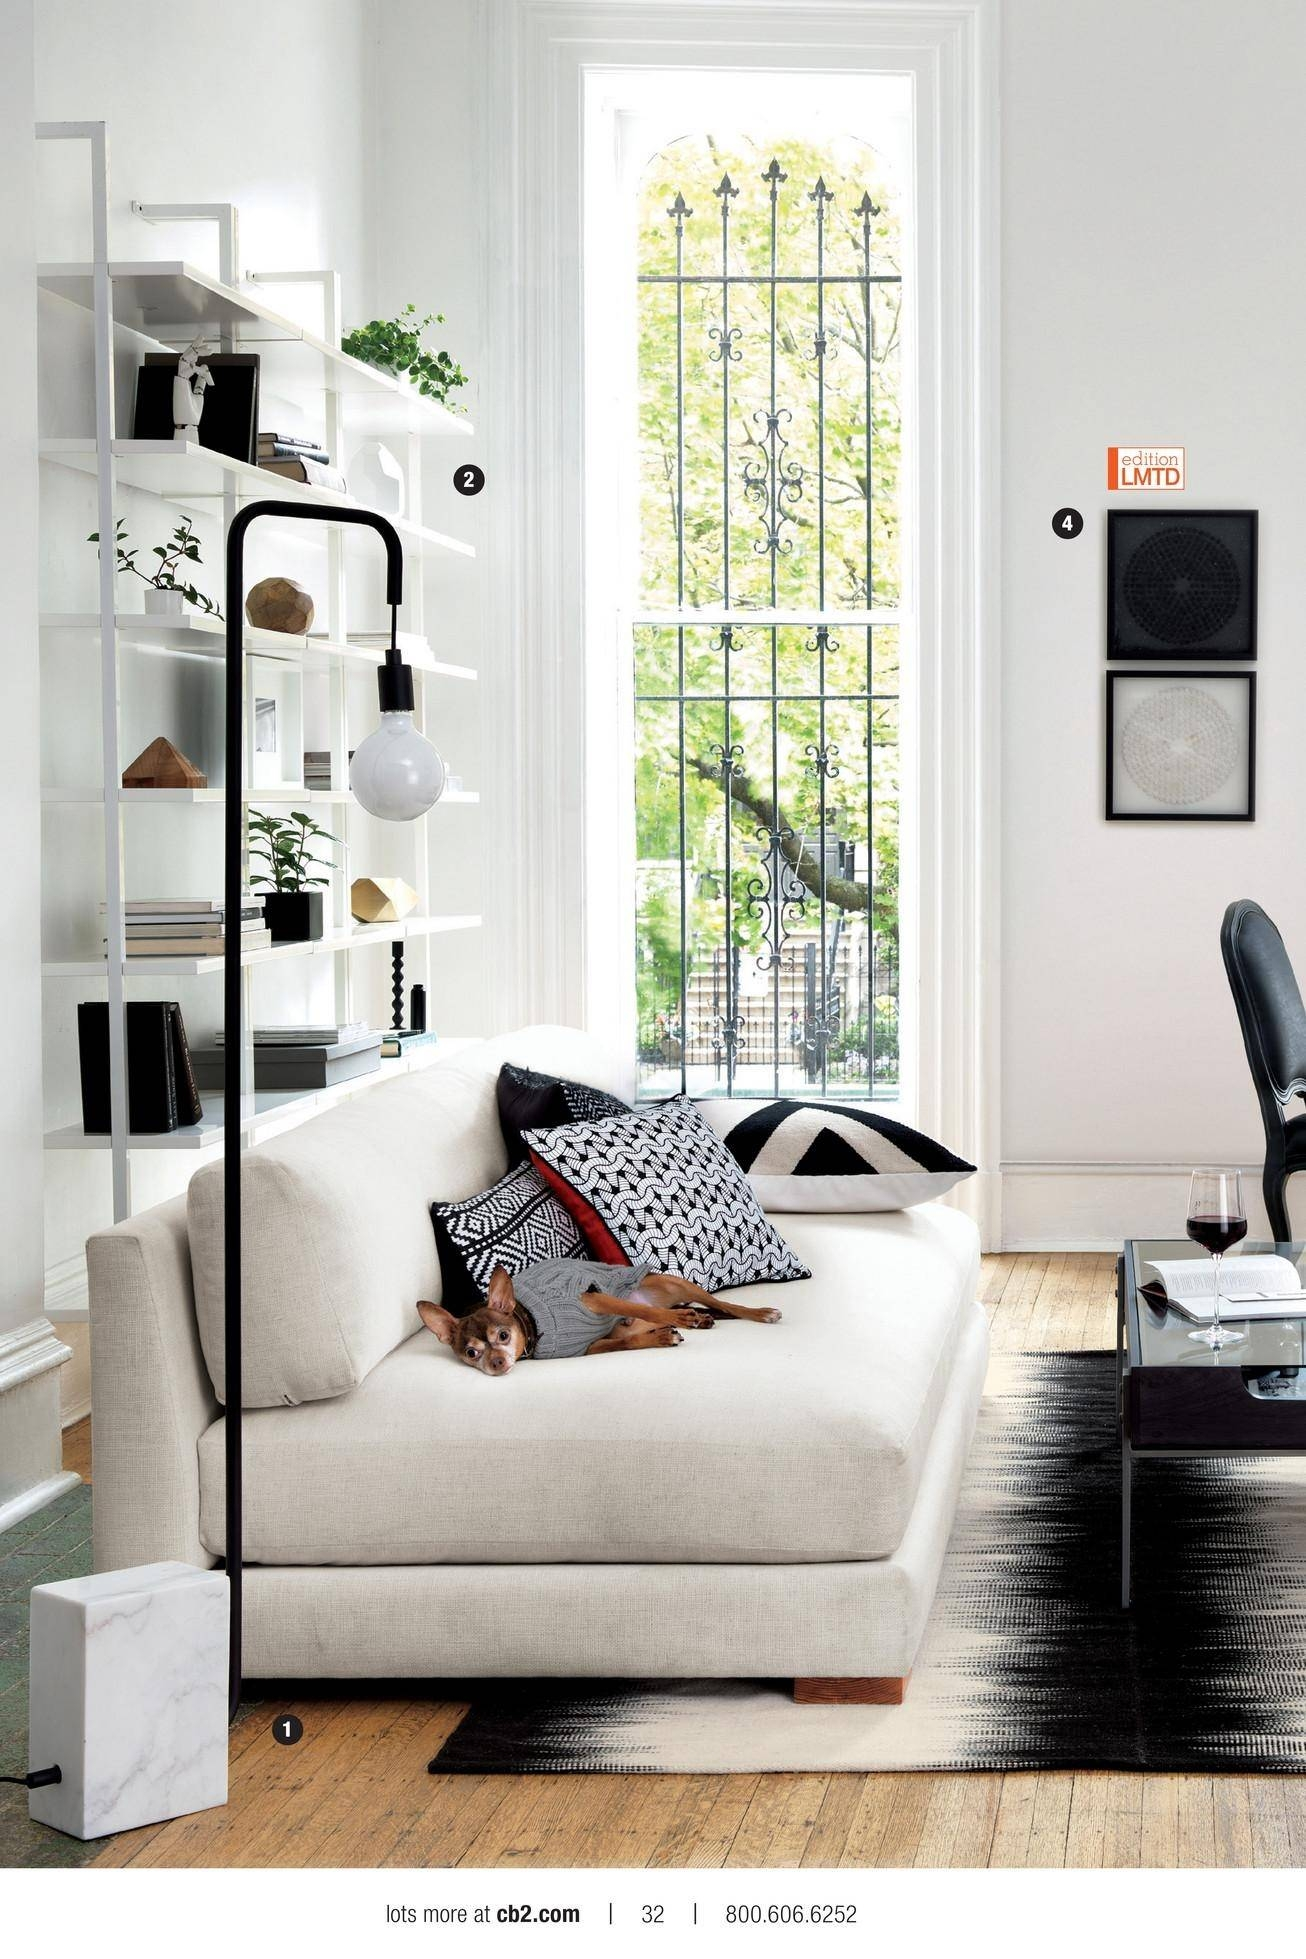 Popular Photo of Cb2 Piazza Sofas